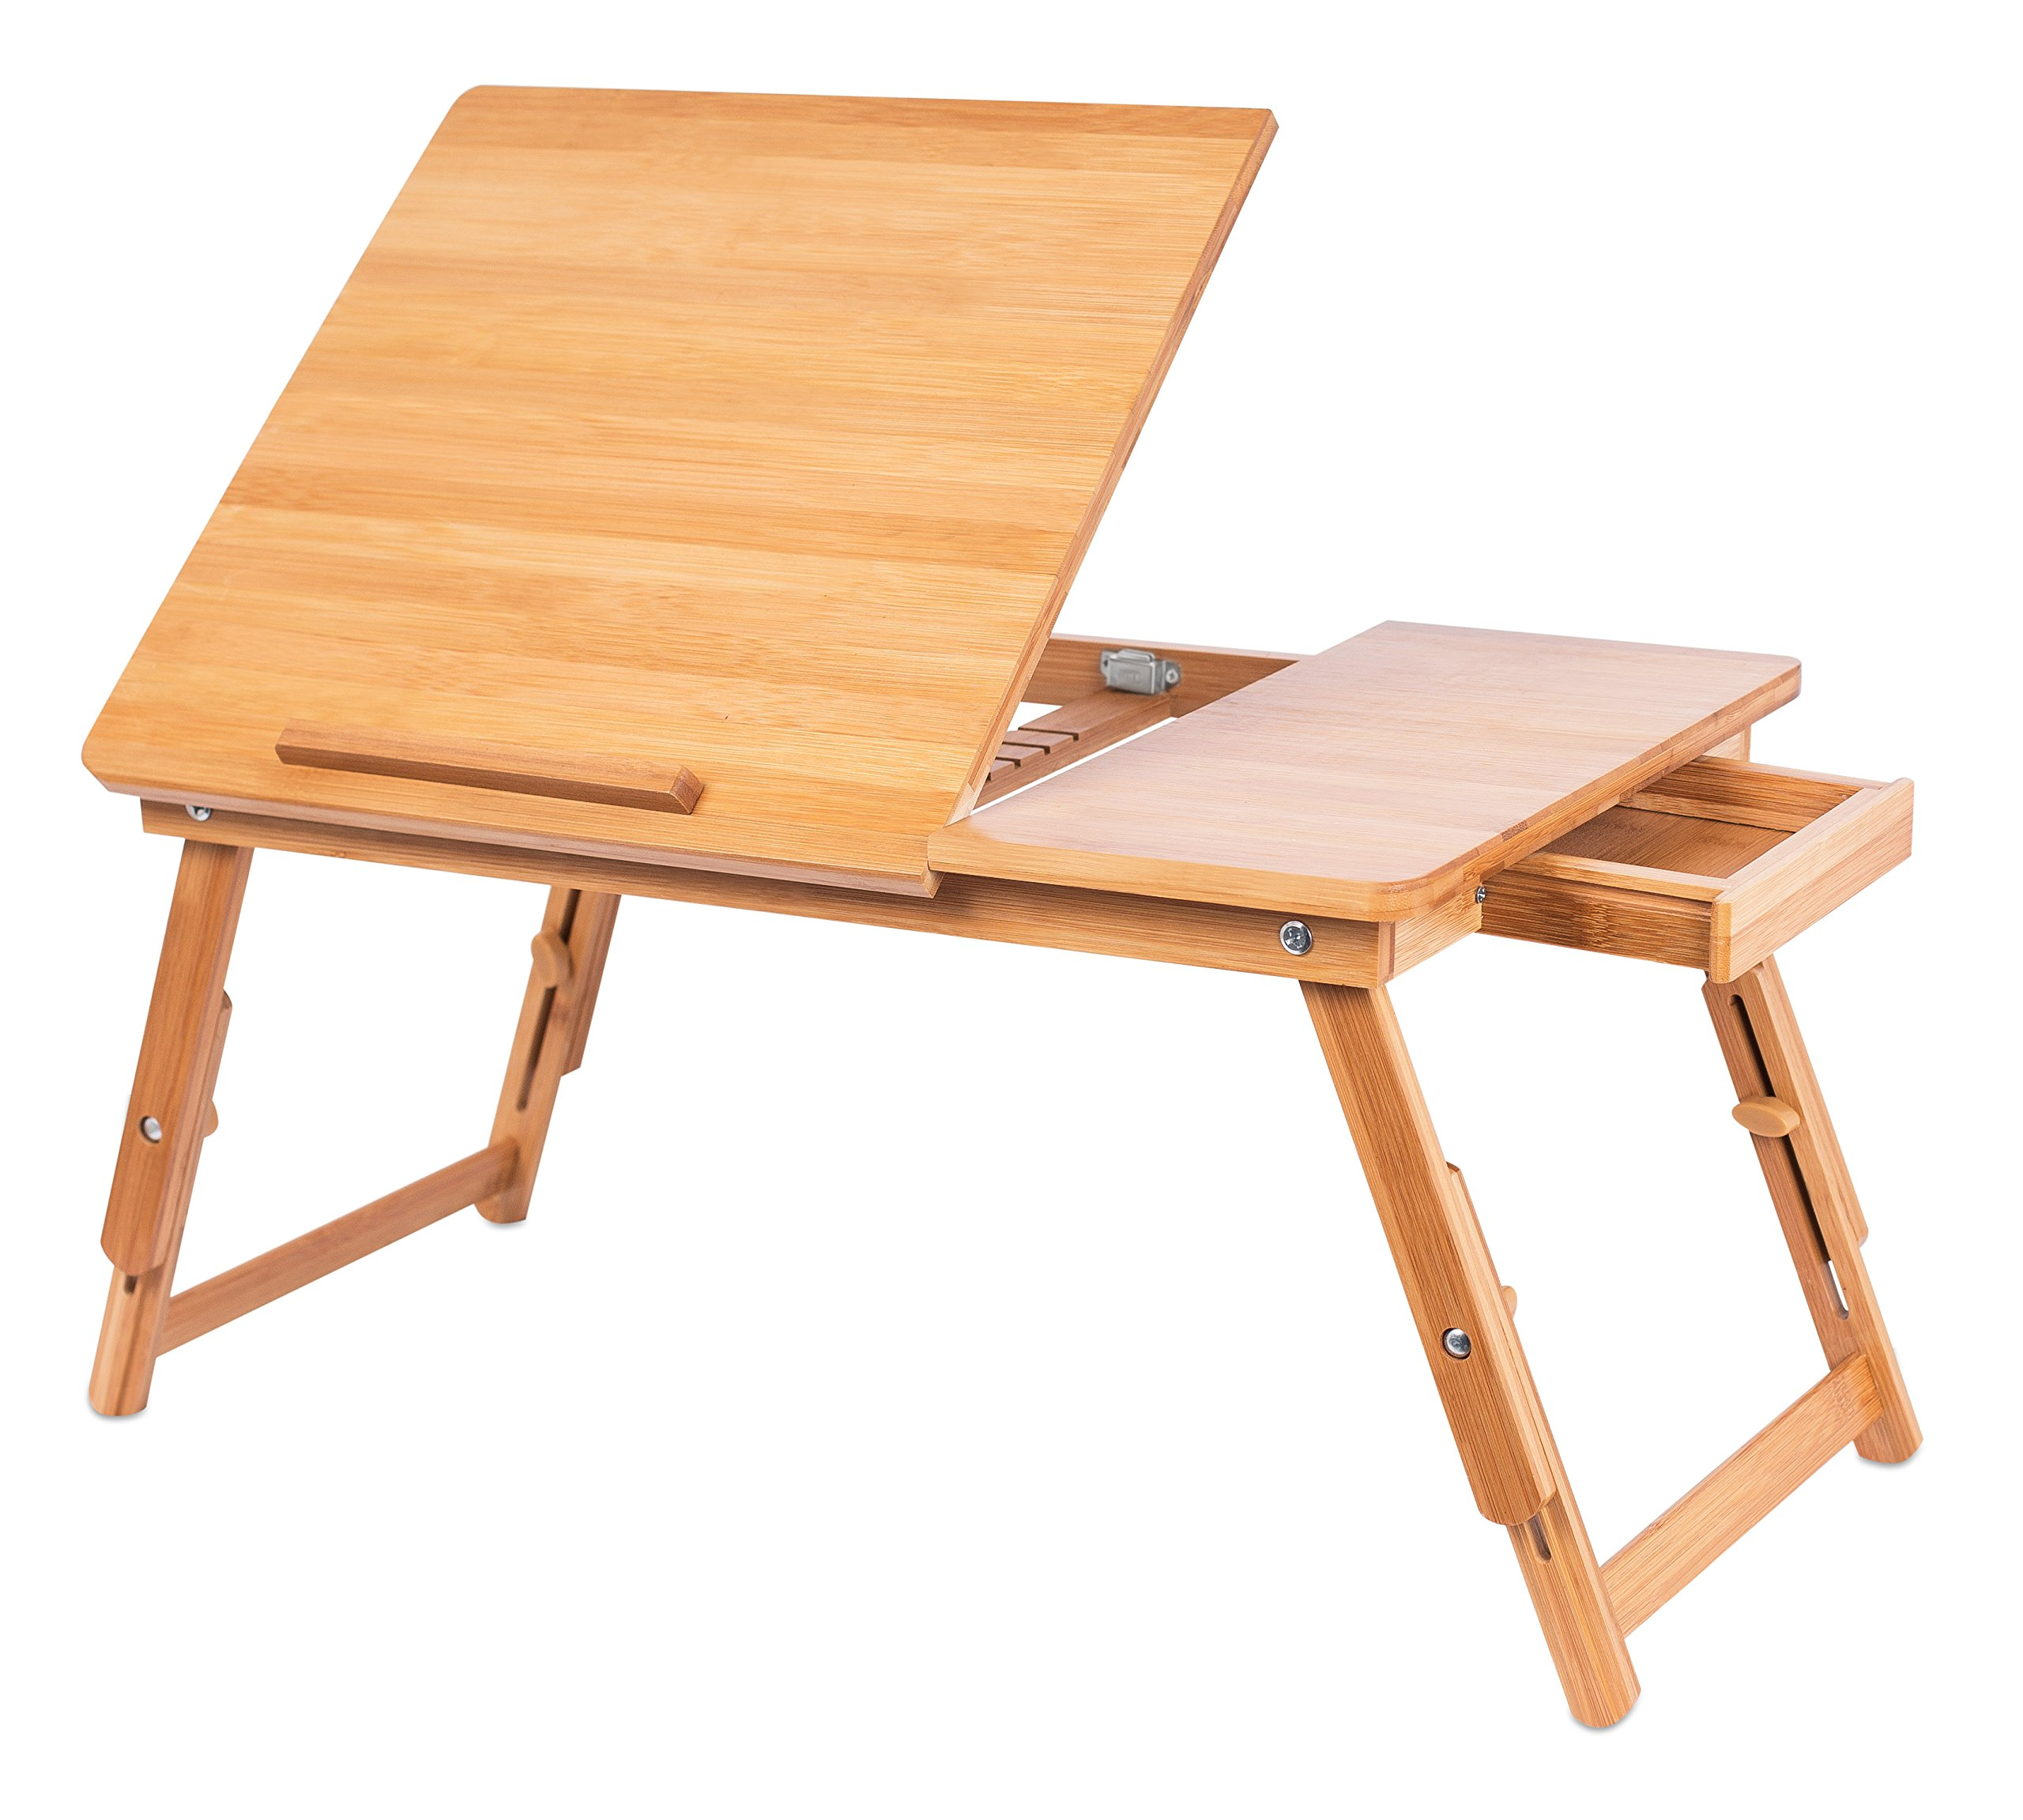 Sofia + Sam Laptop Lap Tray with Adjustable Legs | Bamboo | Foldable Breakfast Serving Bed Tray | Lap Desk with Tilting Top and Side Drawer | Laptop Stand | Natural by Sofia + Sam (Image #4)